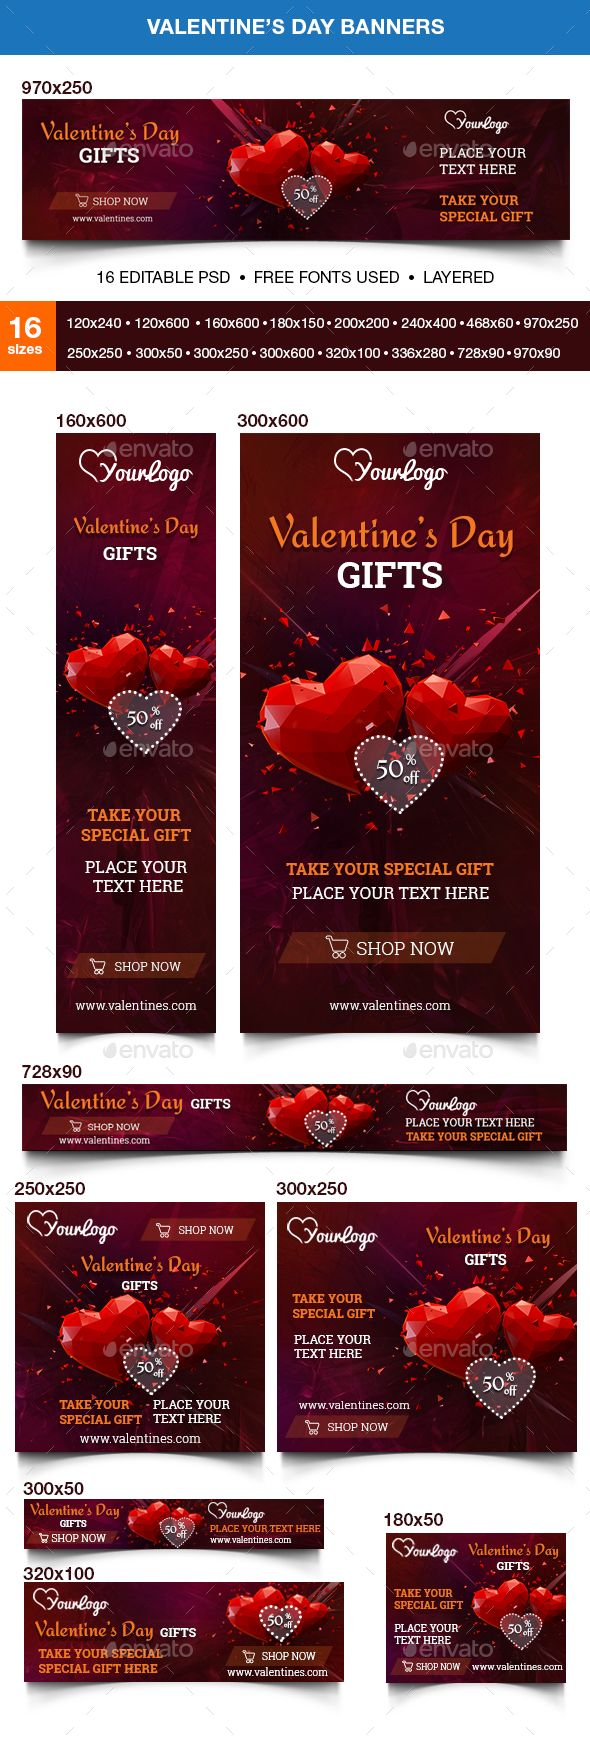 Valentines Day Web Banners Template PSD. Download here: http://graphicriver.net/item/valentines-day-banners/14614843?ref=ksioks